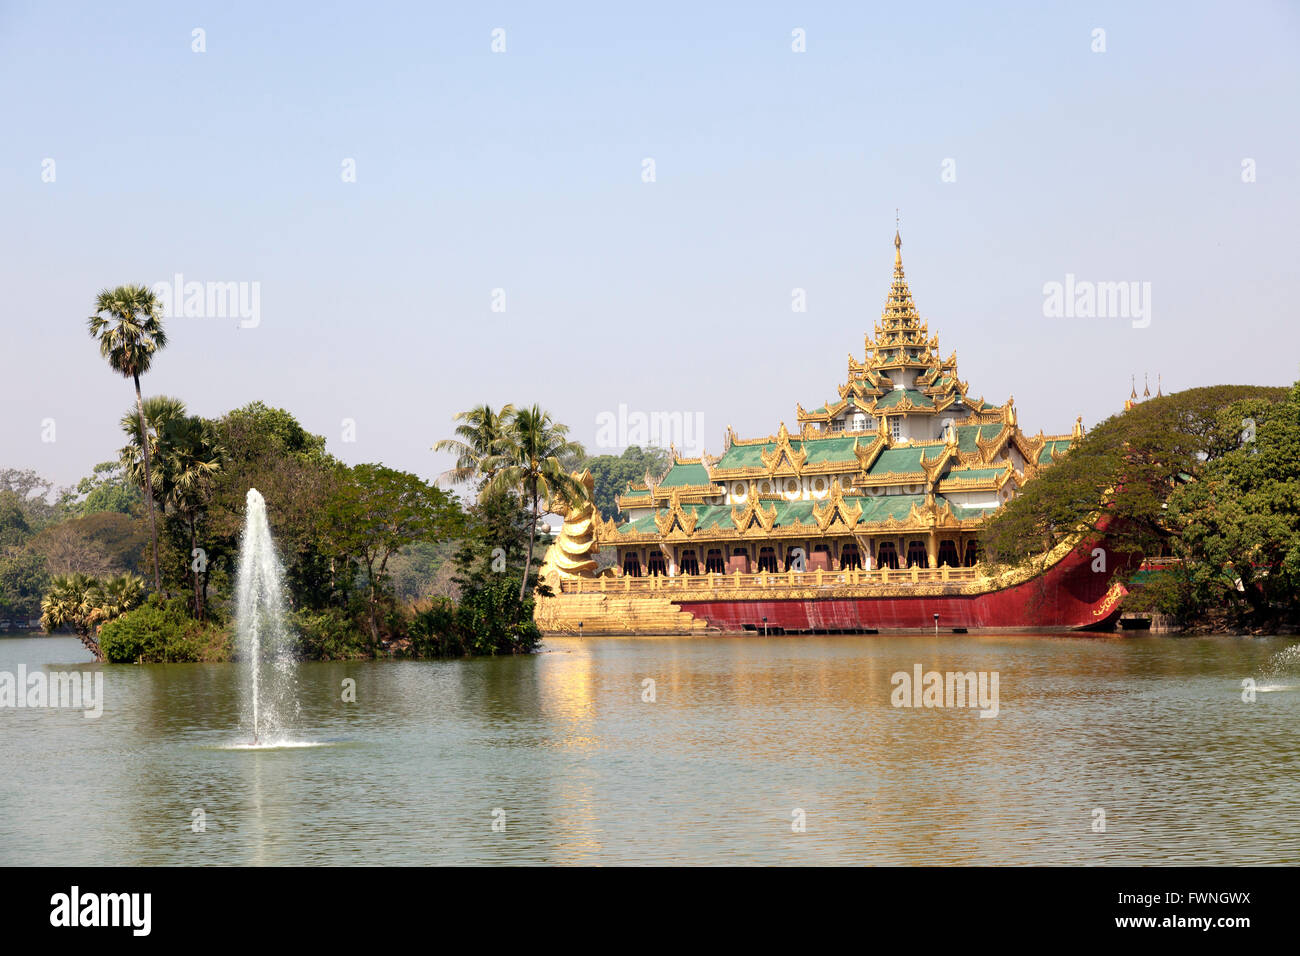 On the Eastern shore of the Kandawgyi Lake (Yangon - Myanmar), the crazy Karaweik Hall is the copy of the Royal - Stock Image